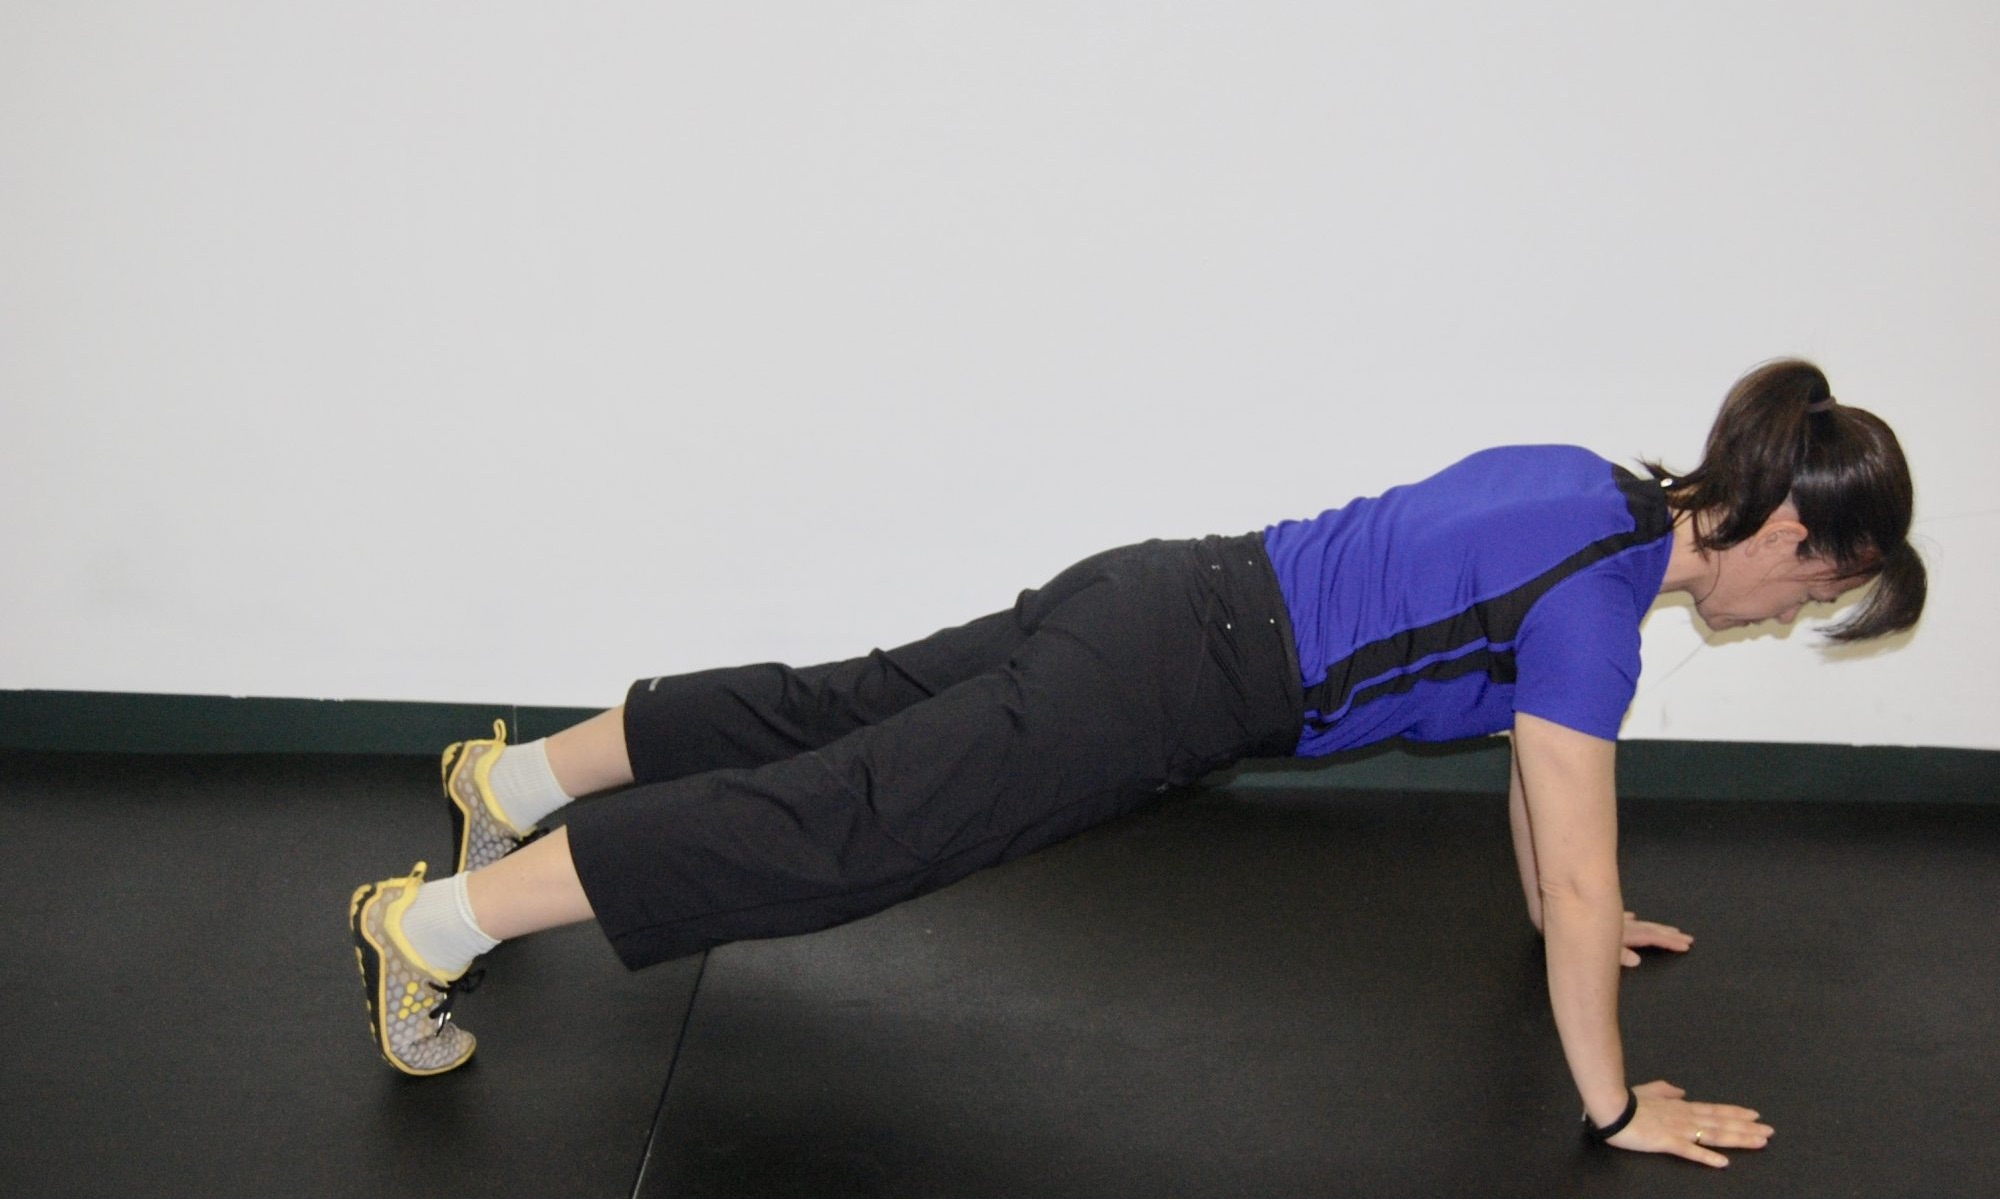 Why not try a push-up negative to test your weaknesses?